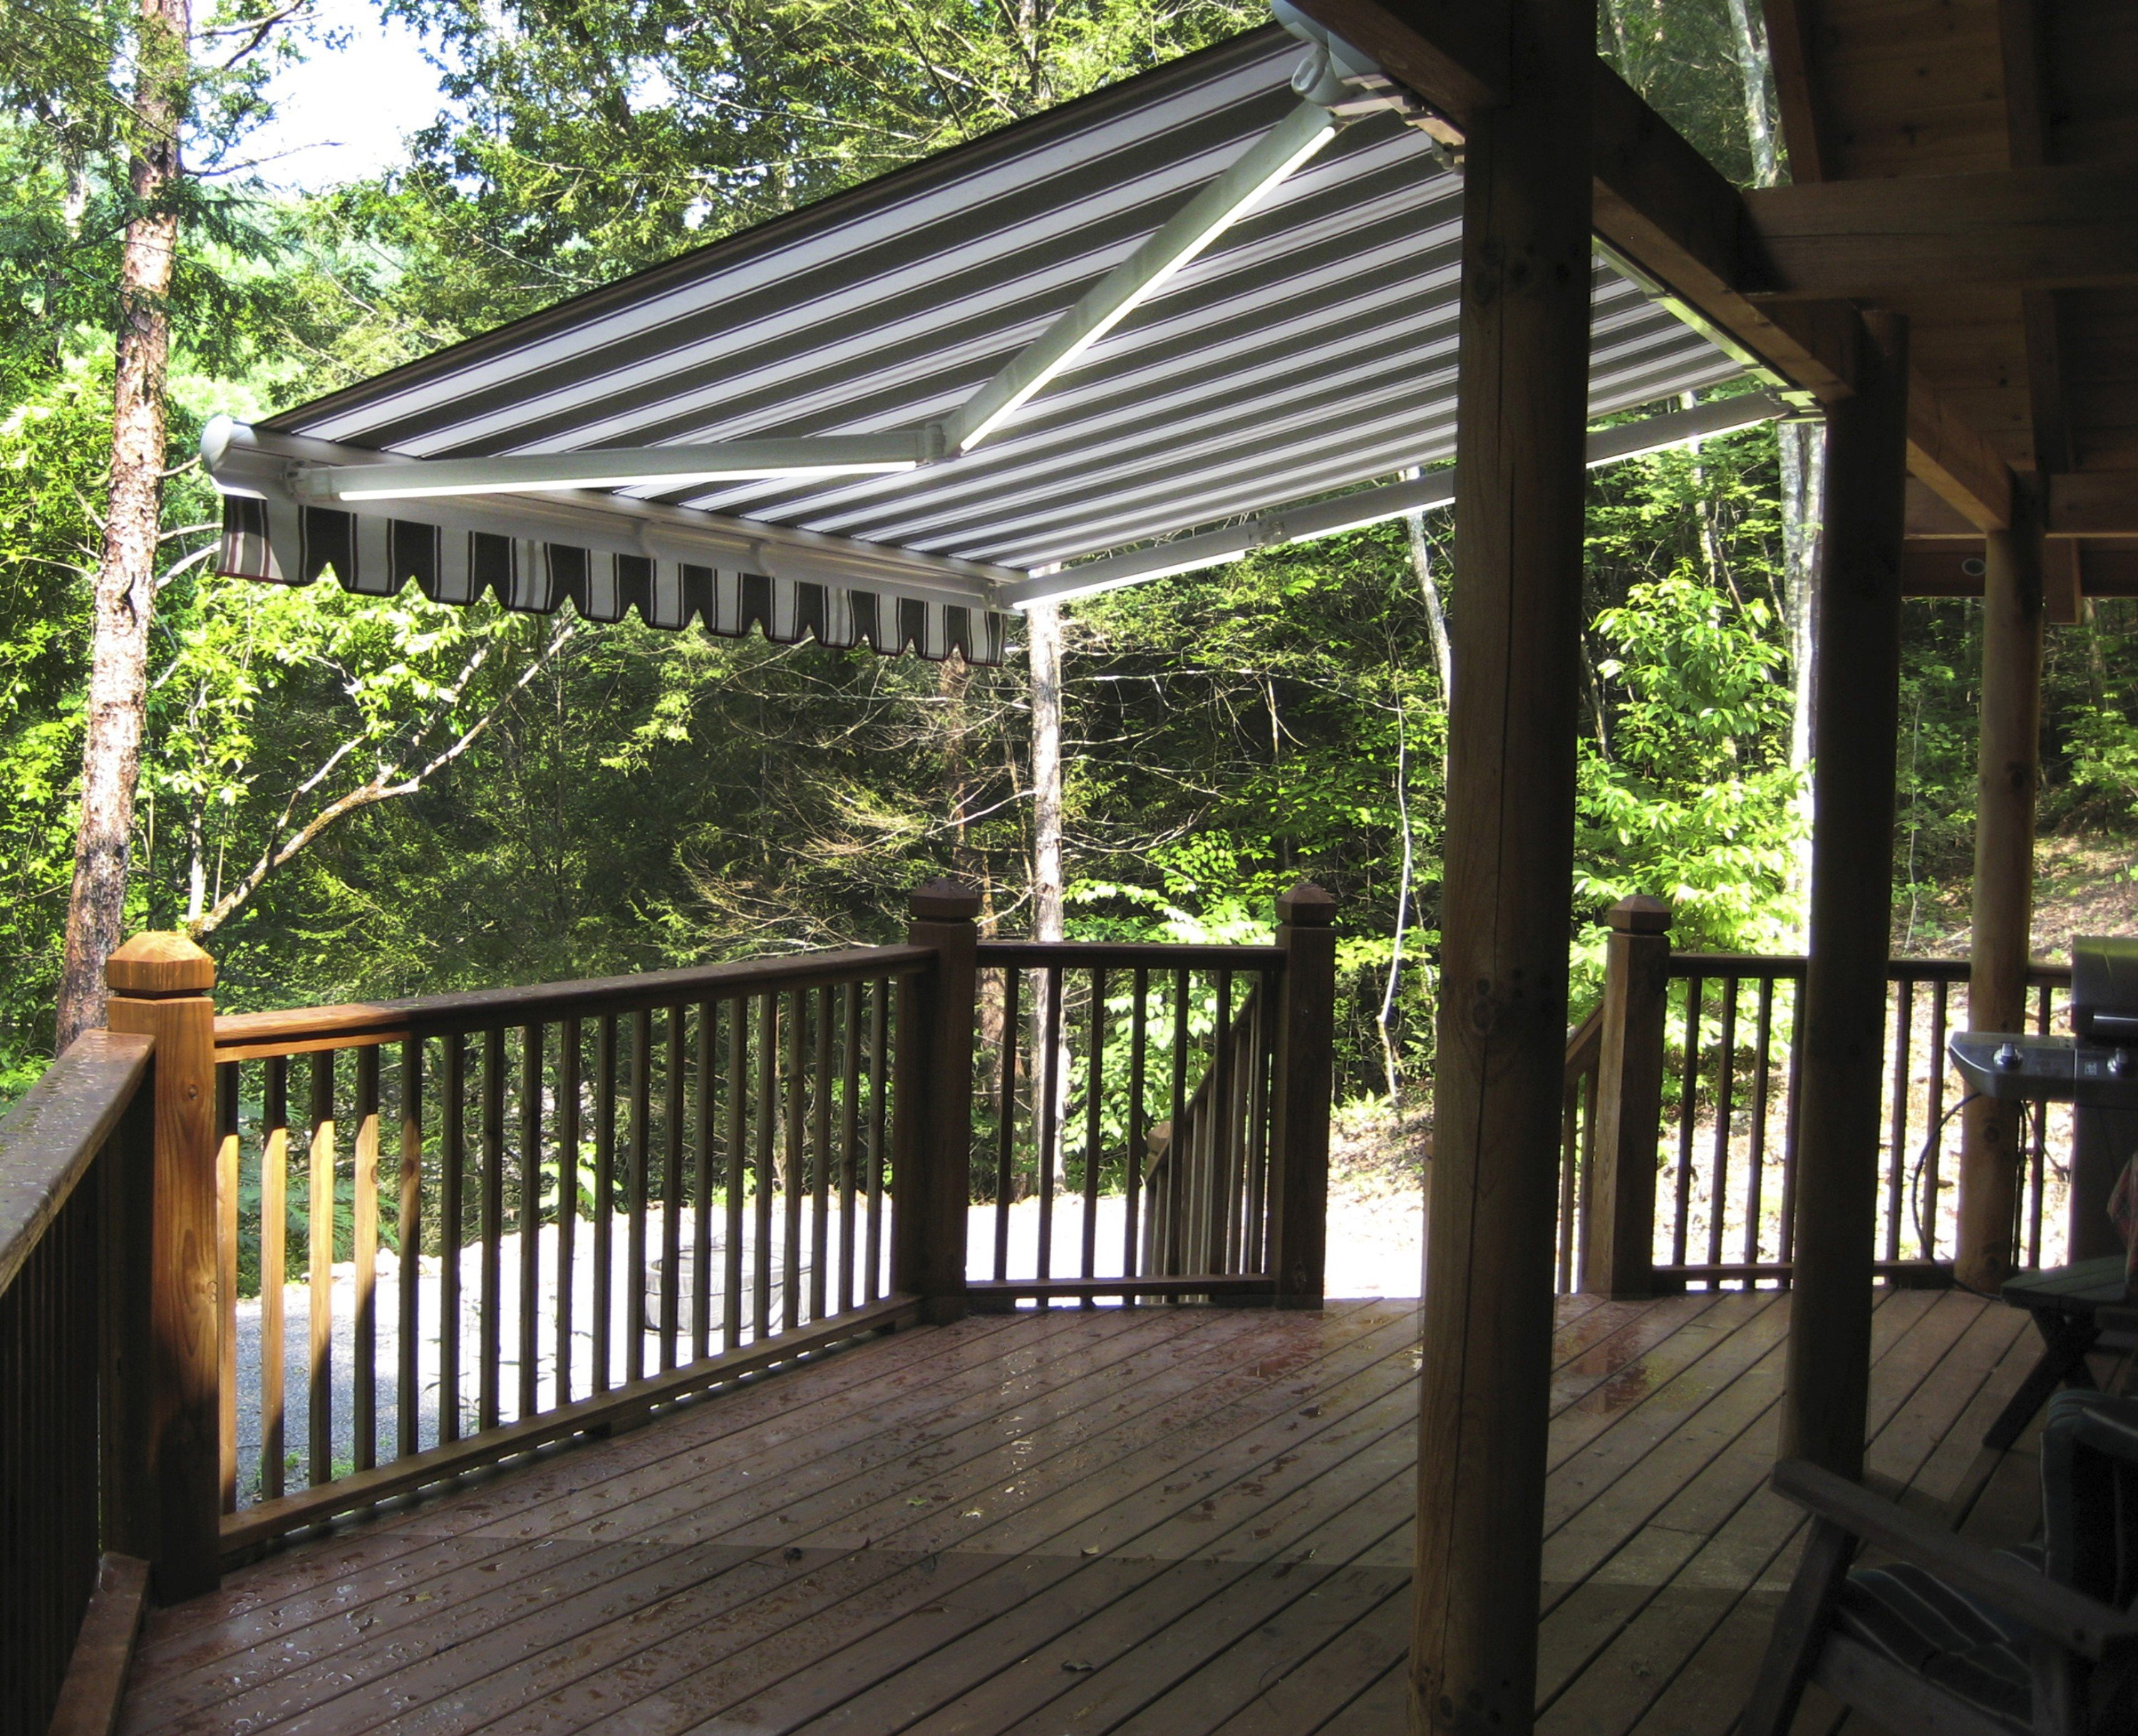 Fabric Awning Ligths